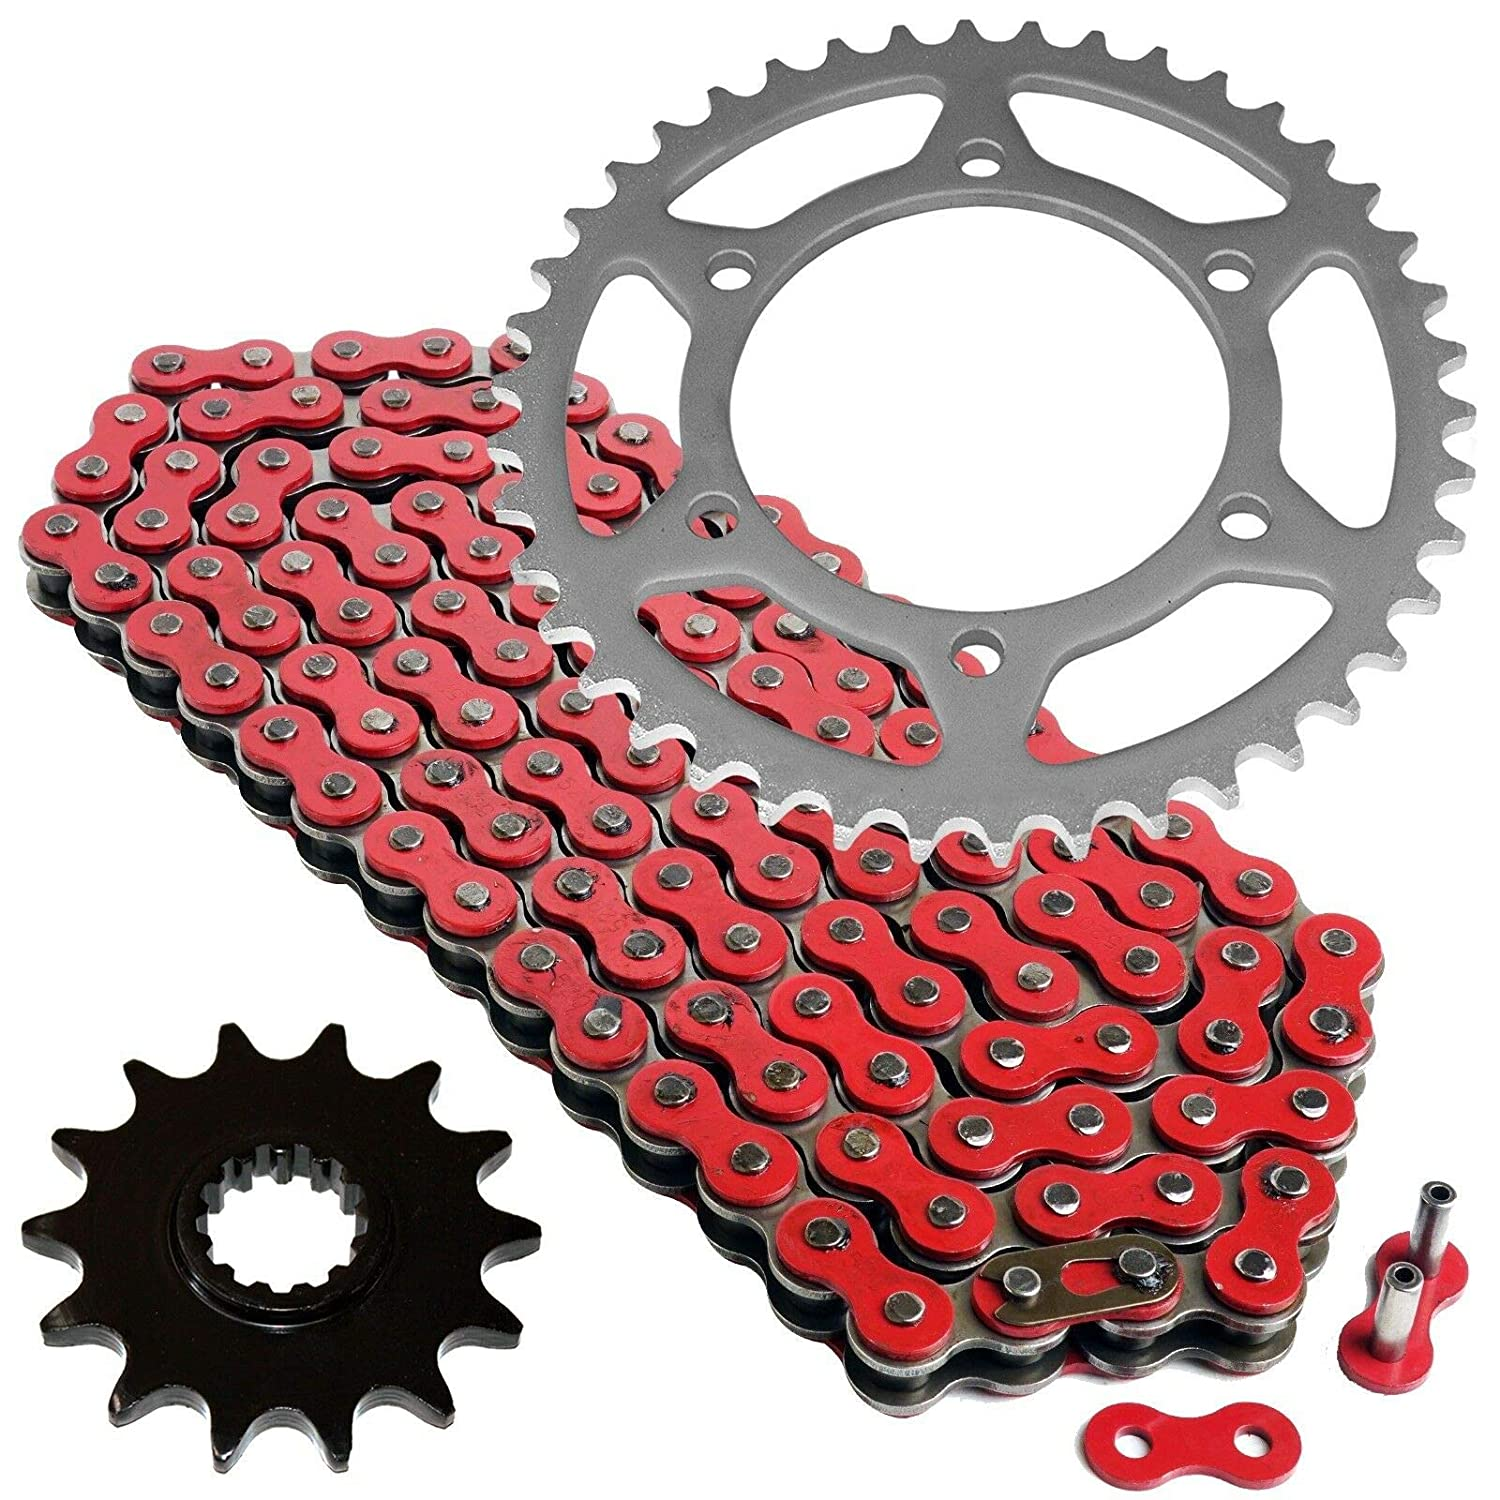 Amazon.com: Caltric Red Drive Chain And Sprocket Kit for ...